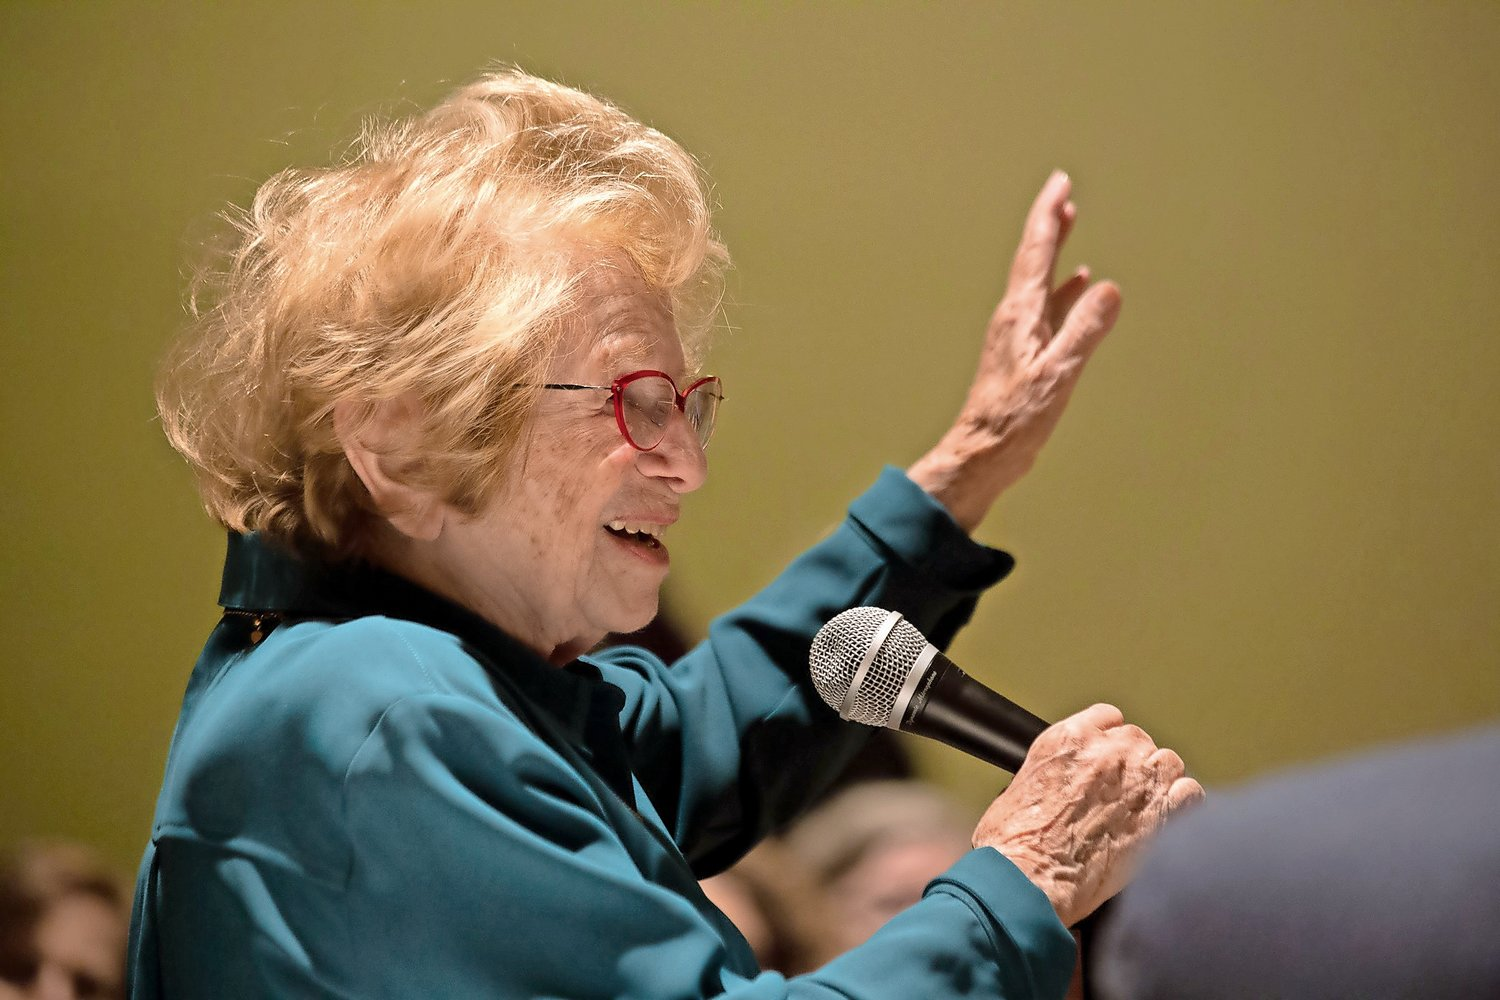 Author and sex therapist Dr. Ruth Westheimer speaks to a enthusiastic audience about her life and career at the Conservative Synagogue Adath Israel of Riverdale.